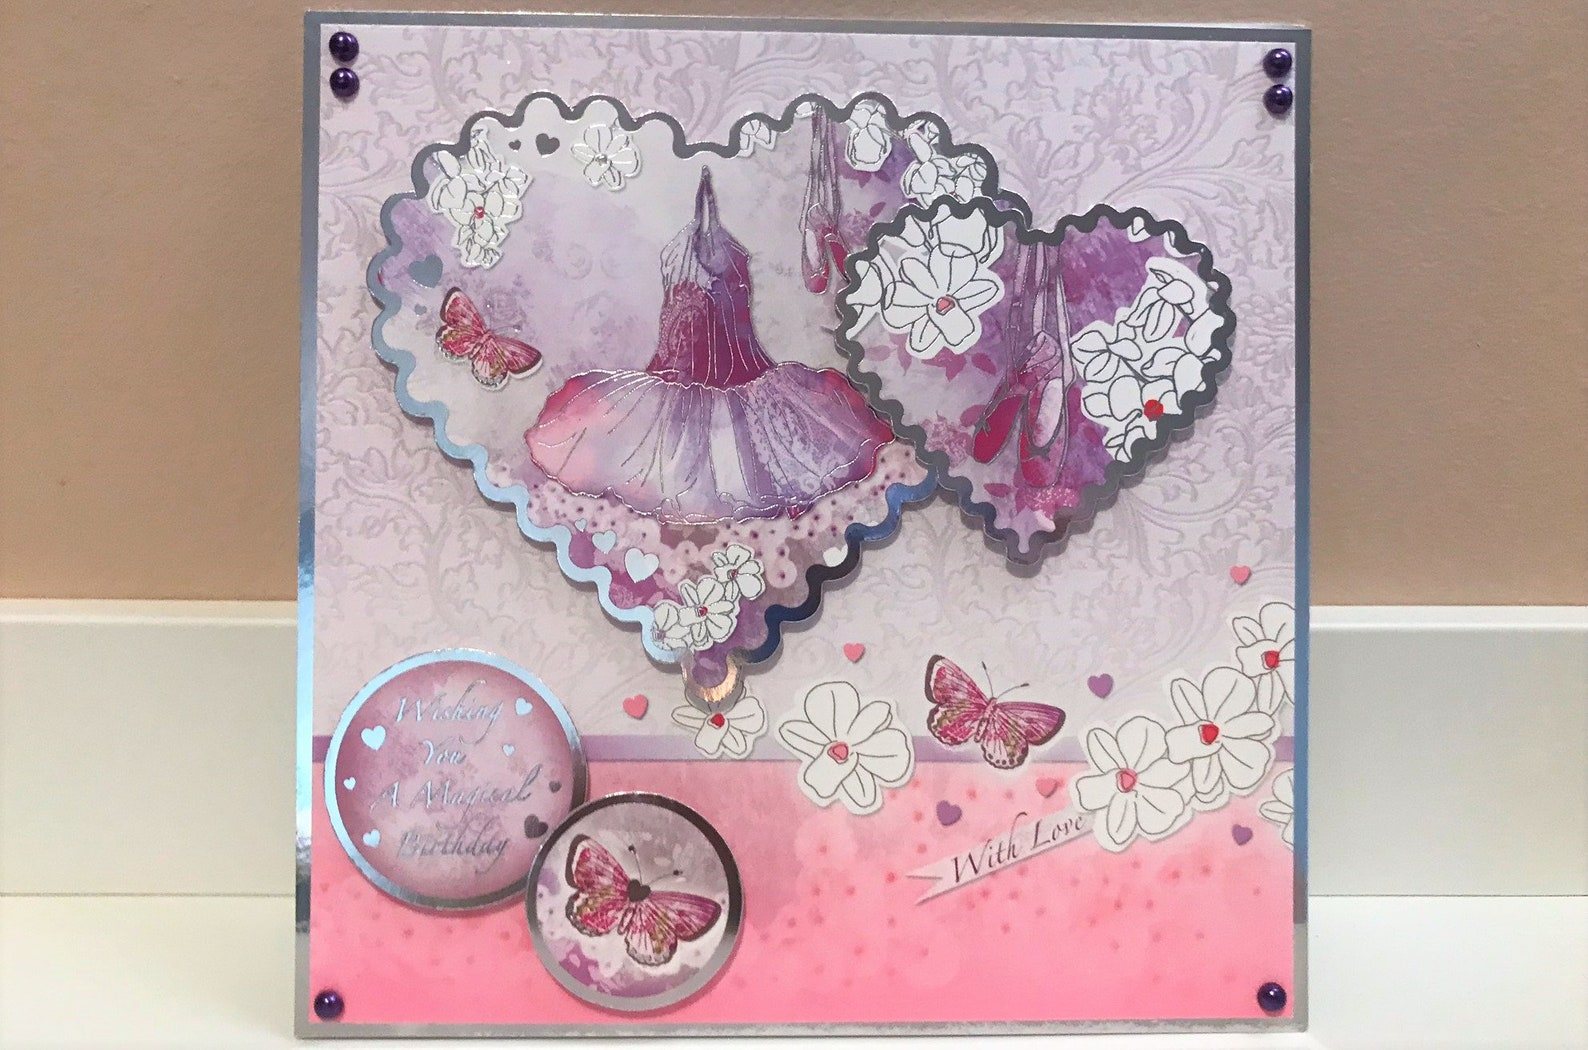 wishing you a magical birthday - girl's birthday card, ballet card ballet shoes card purple card children's card, dance